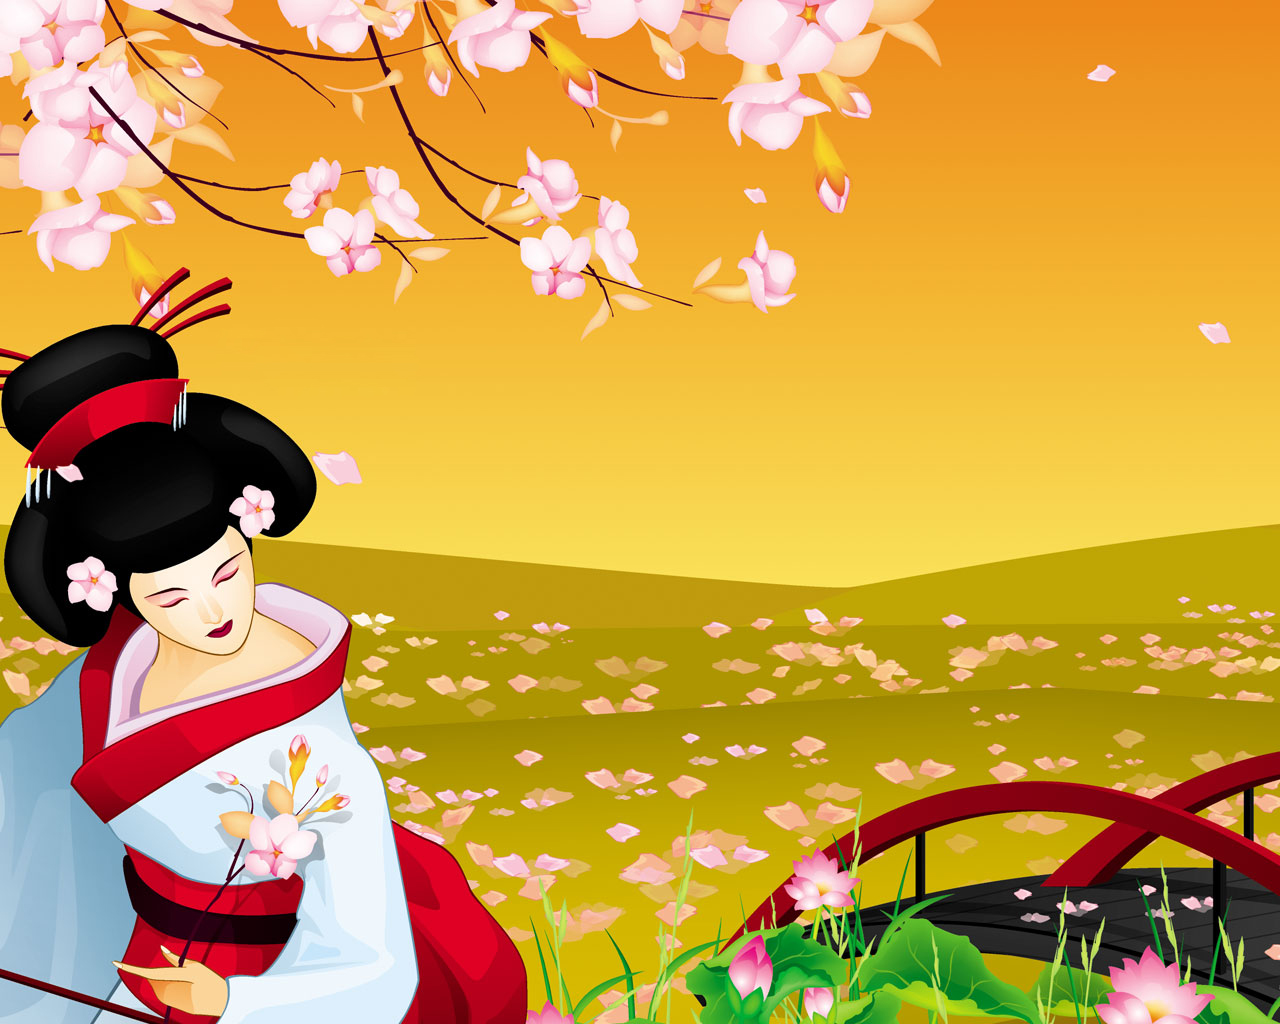 Japan Wallpapers and Images Japanese Geisha Wallpapers 1280x1024